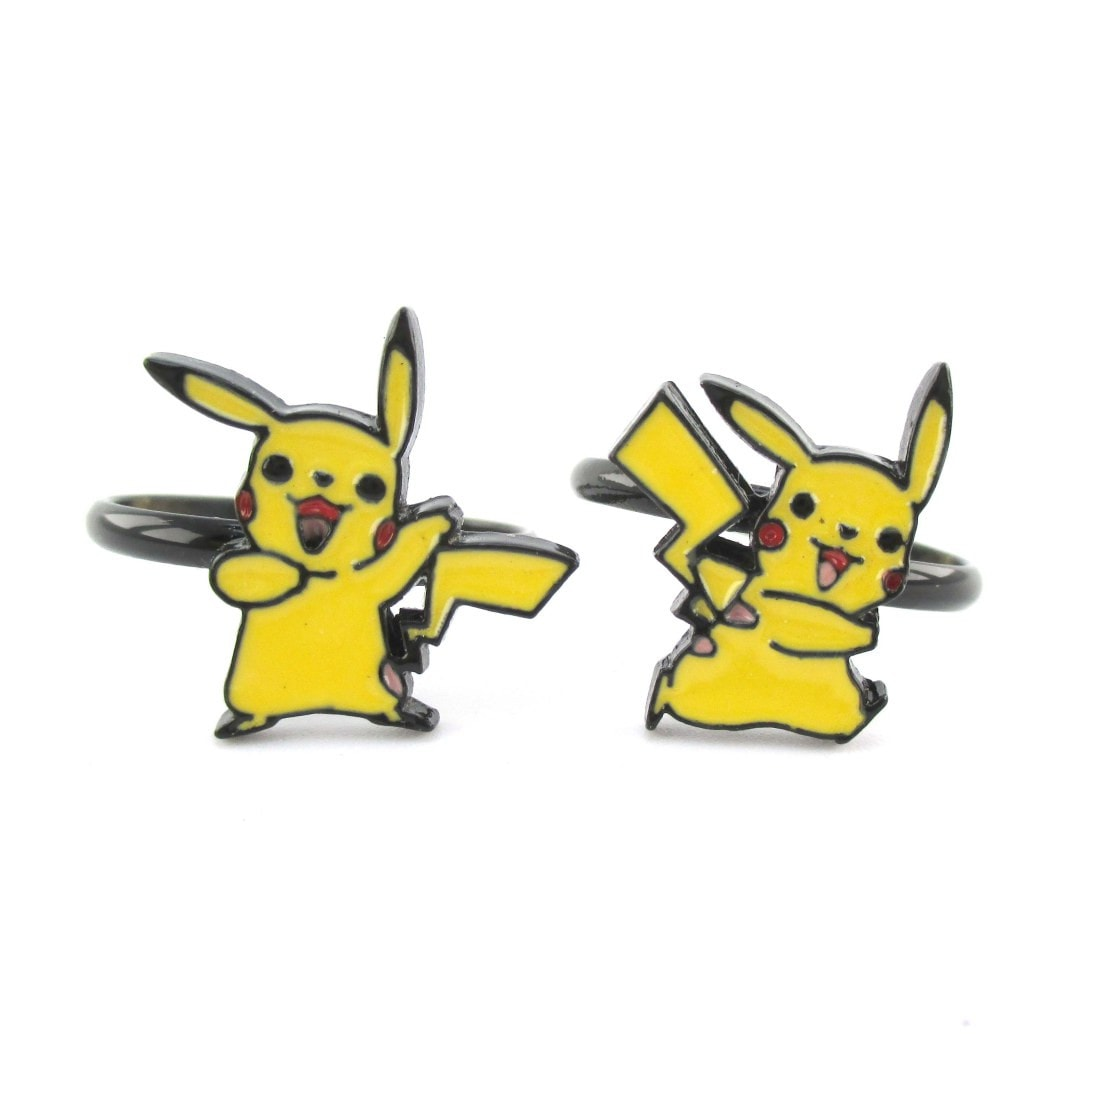 Pikachu Shaped Nintendo Pokémon Themed Adjustable Ring